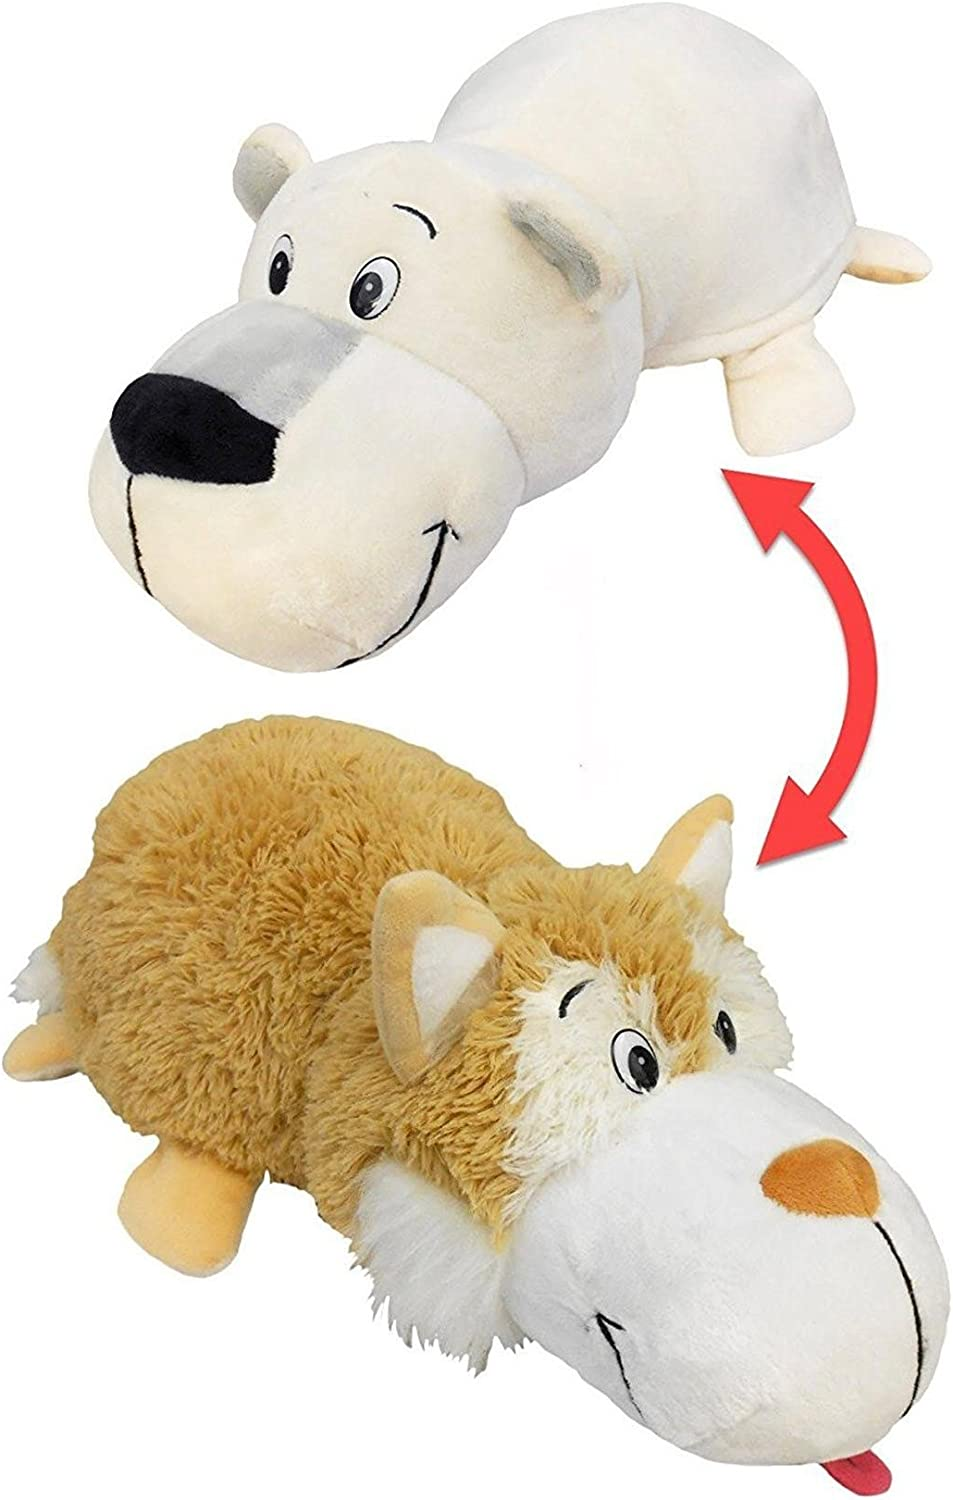 FlipaZoo 30 Plush 2 in 1 Pillow  Beige Husky Transforming to Polar Bear